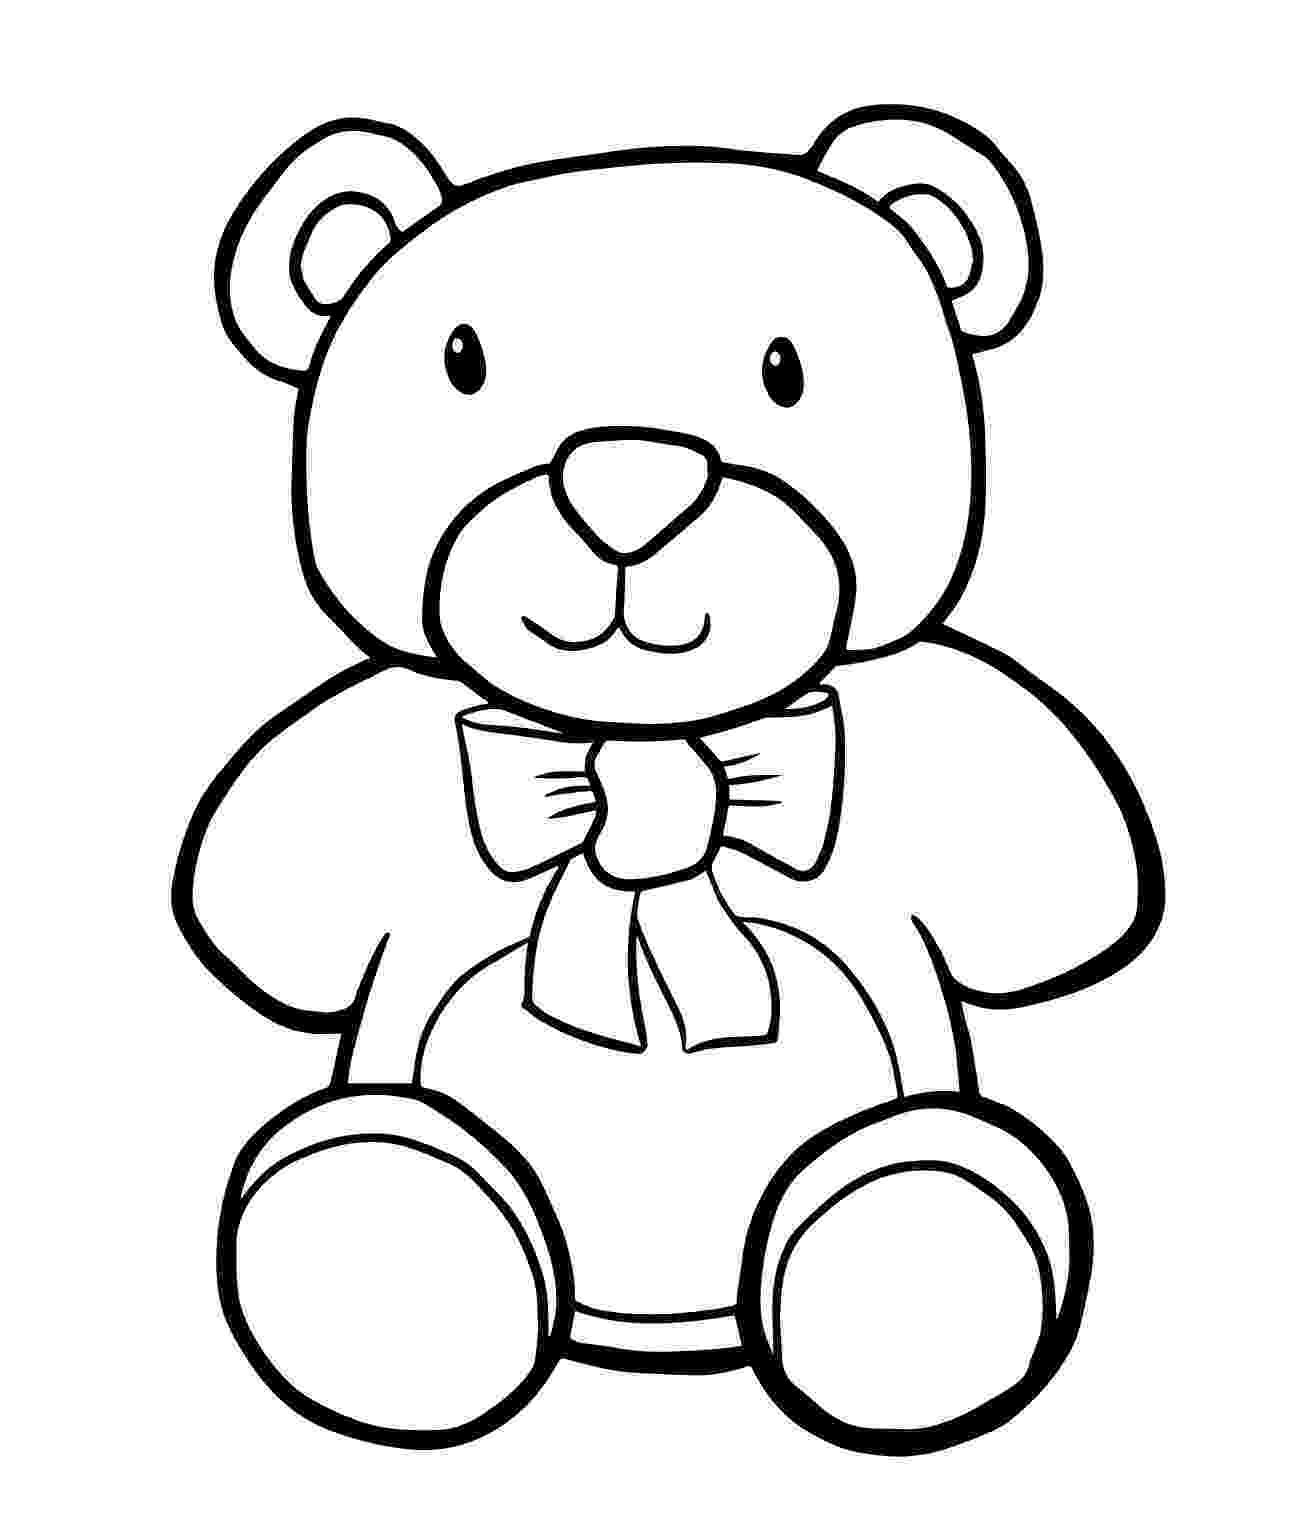 coloring sheet teddy bear printable teddy bear coloring pages for kids cool2bkids bear teddy coloring sheet